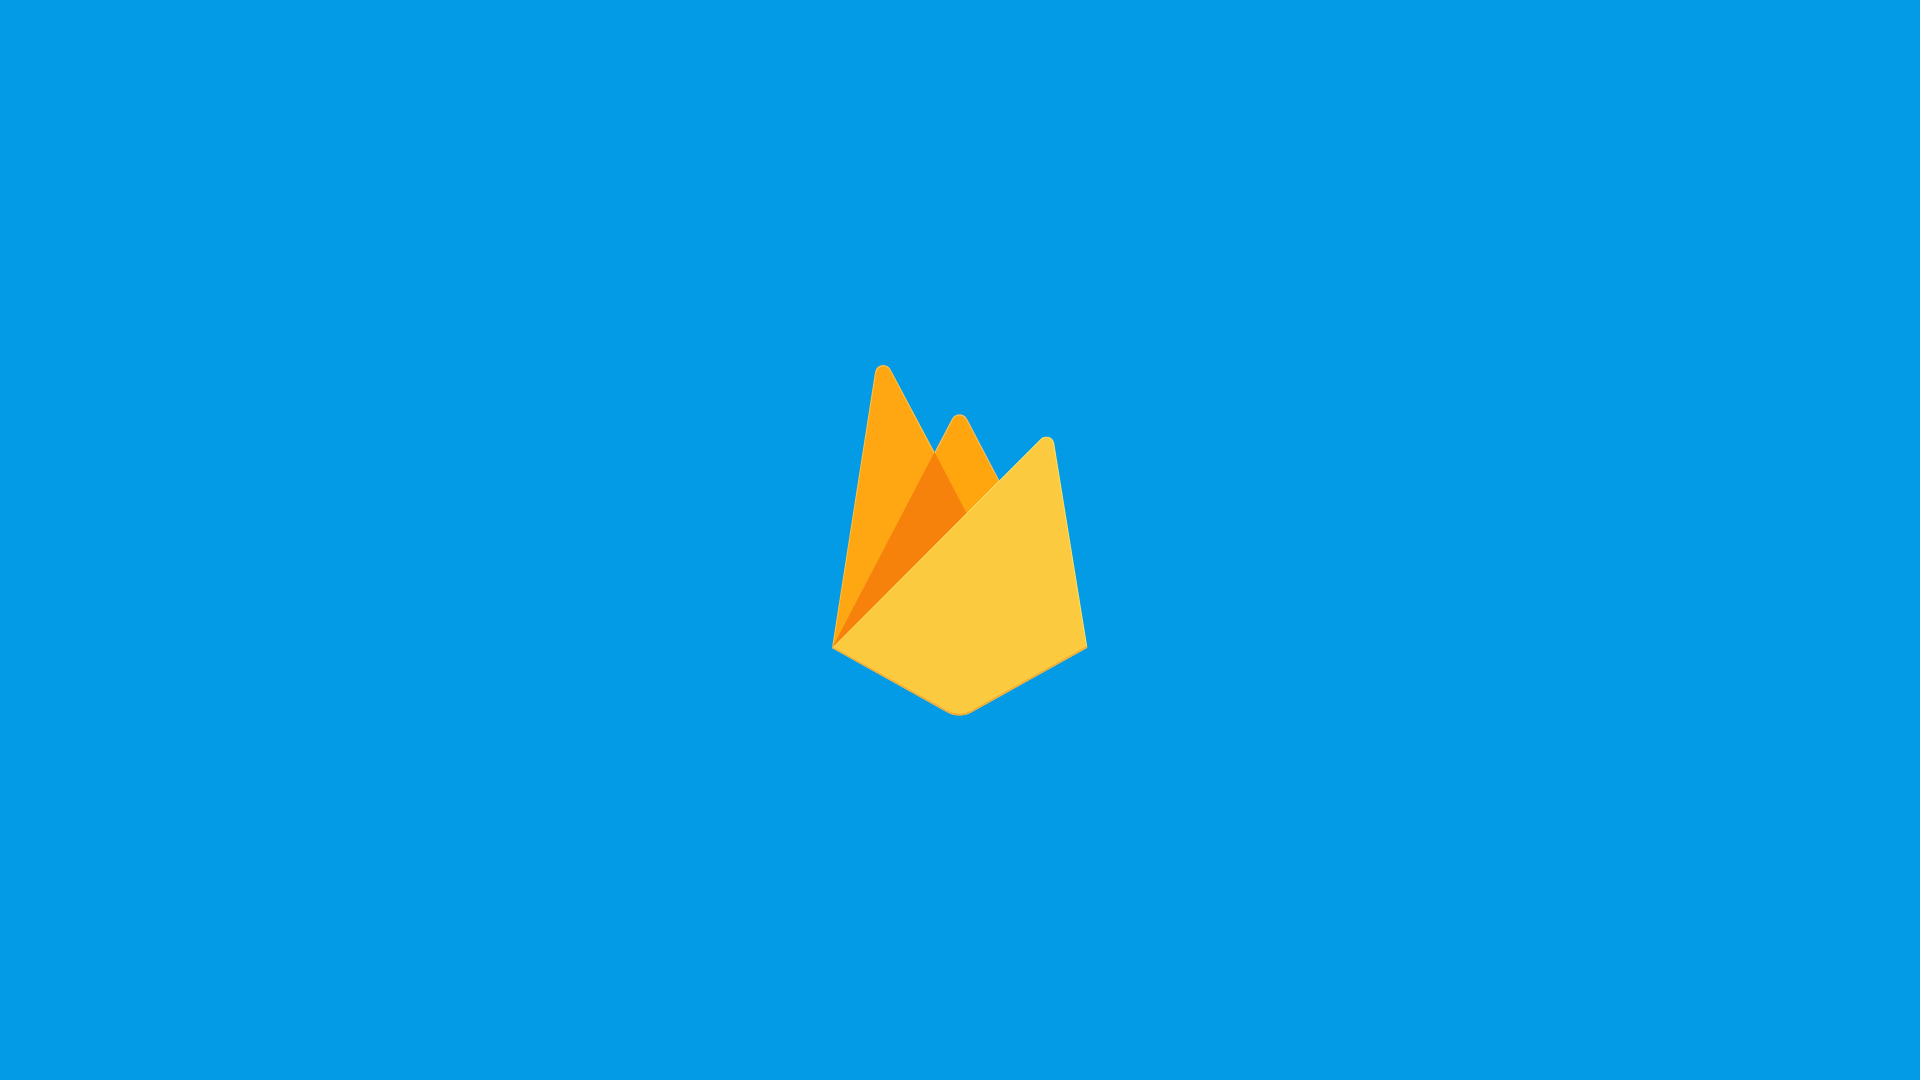 Using Firebase to provide realtime notifications